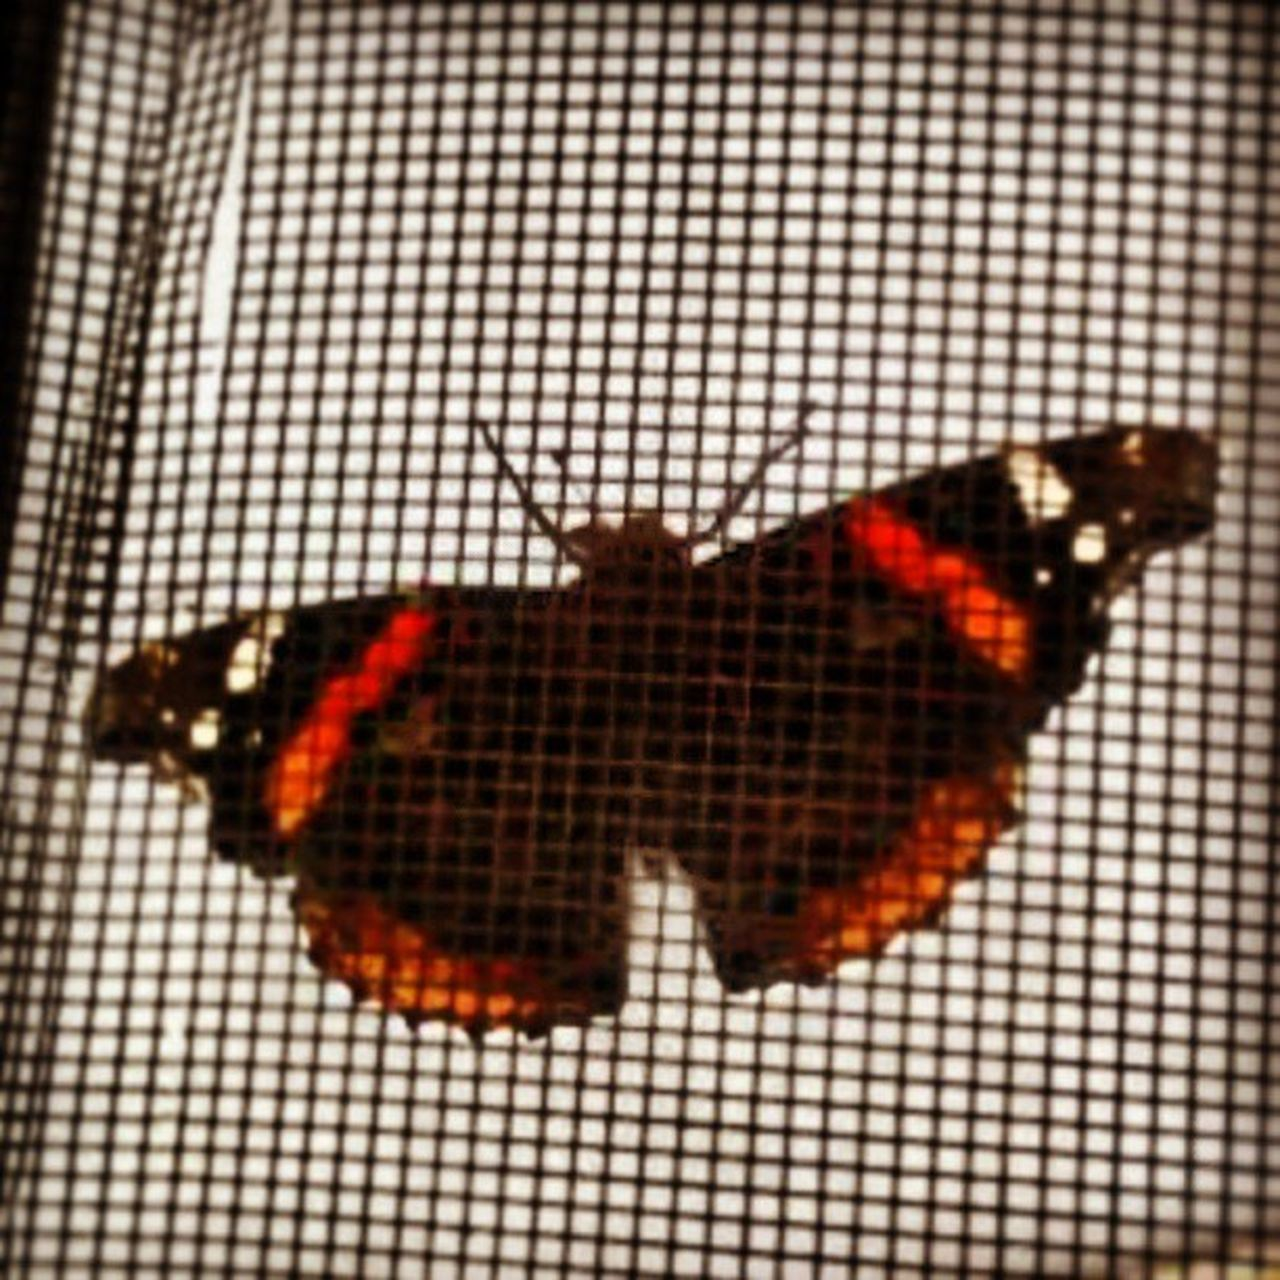 animal themes, insect, one animal, animals in the wild, no people, close-up, animal wildlife, butterfly - insect, pattern, animal markings, red, indoors, nature, day